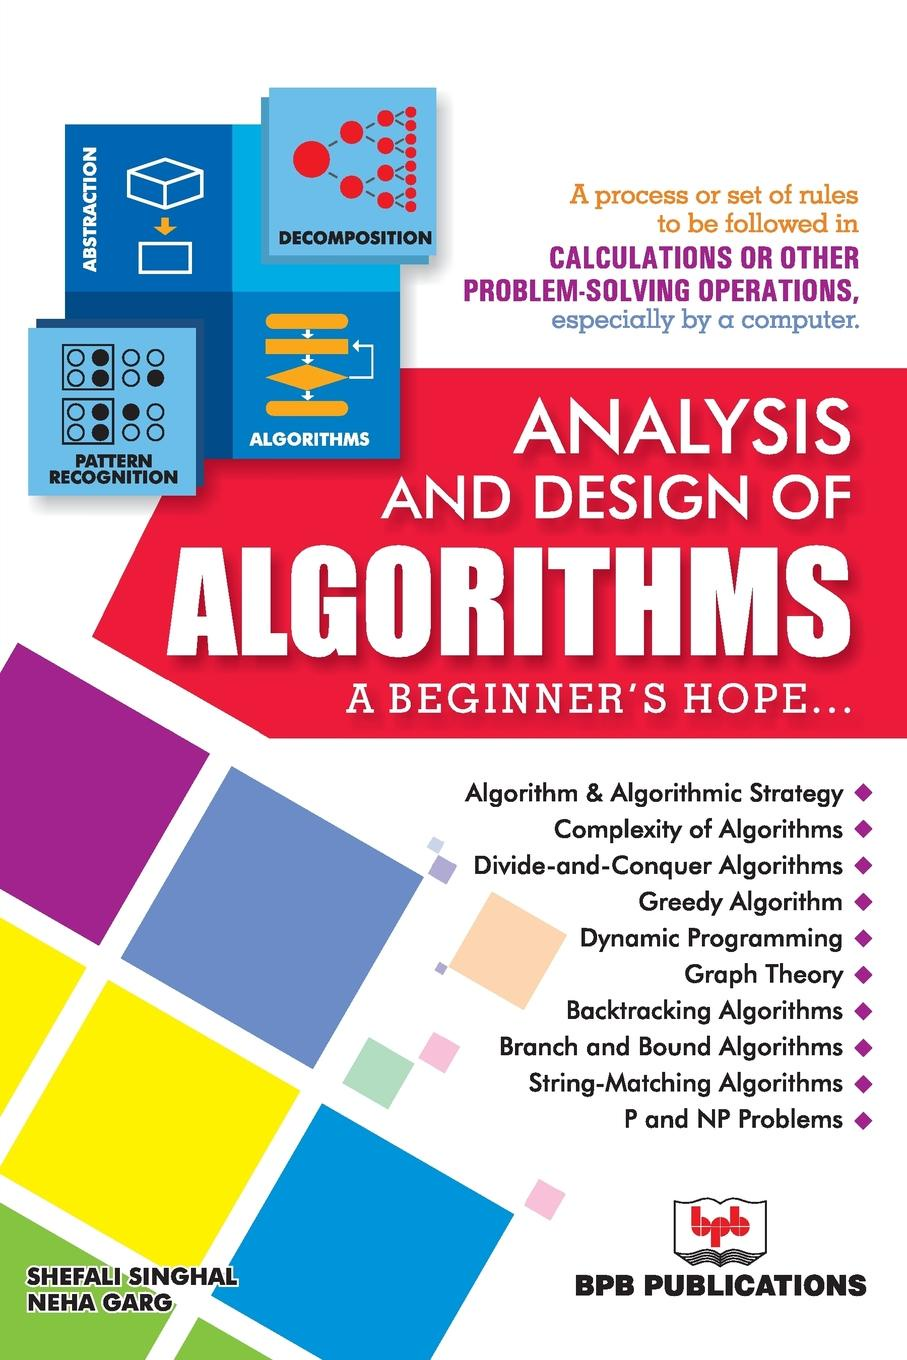 Shefali Singhal. ANALYSIS AND DESIGN OF ALGORITHMS